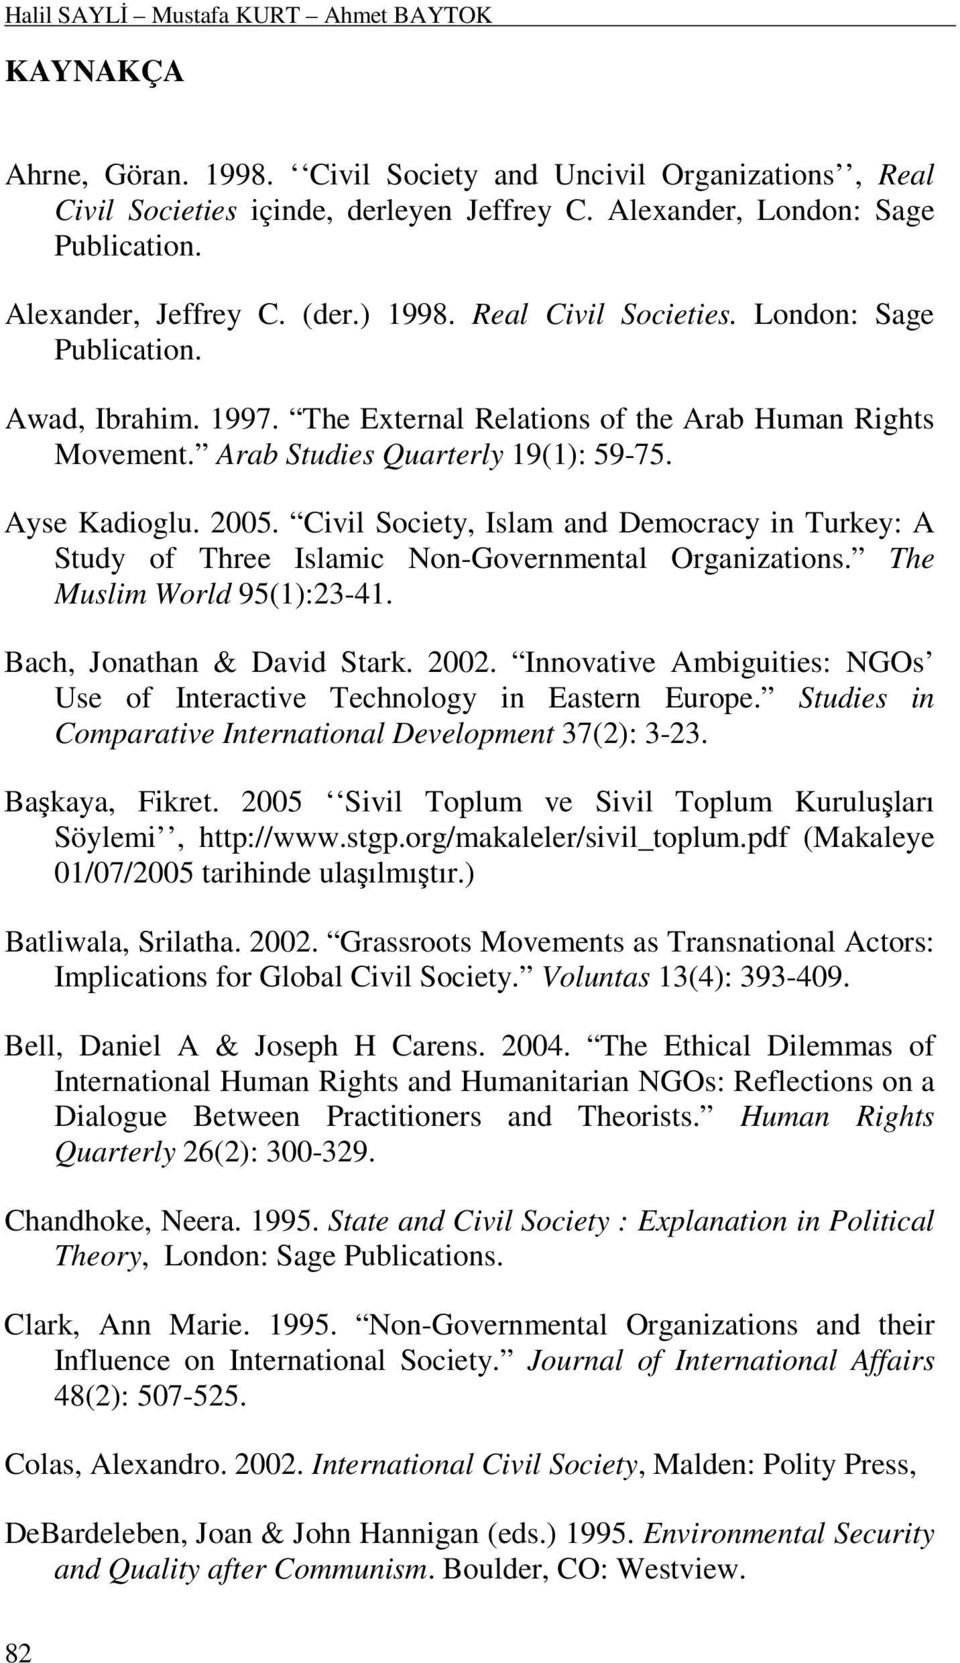 Ayse Kadioglu. 2005. Civil Society, Islam and Democracy in Turkey: A Study of Three Islamic Non-Governmental Organizations. The Muslim World 95(1):23-41. Bach, Jonathan & David Stark. 2002.